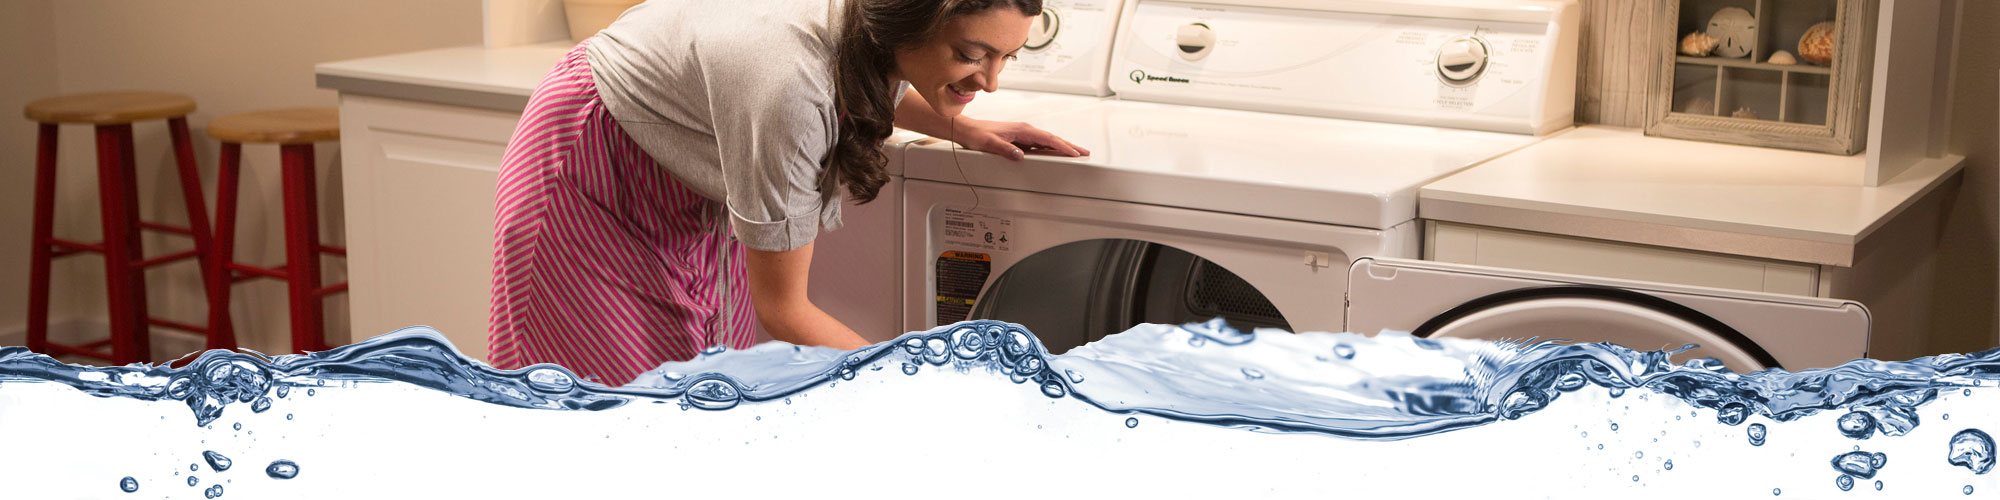 speed queen domestic household laundry equipment repairs